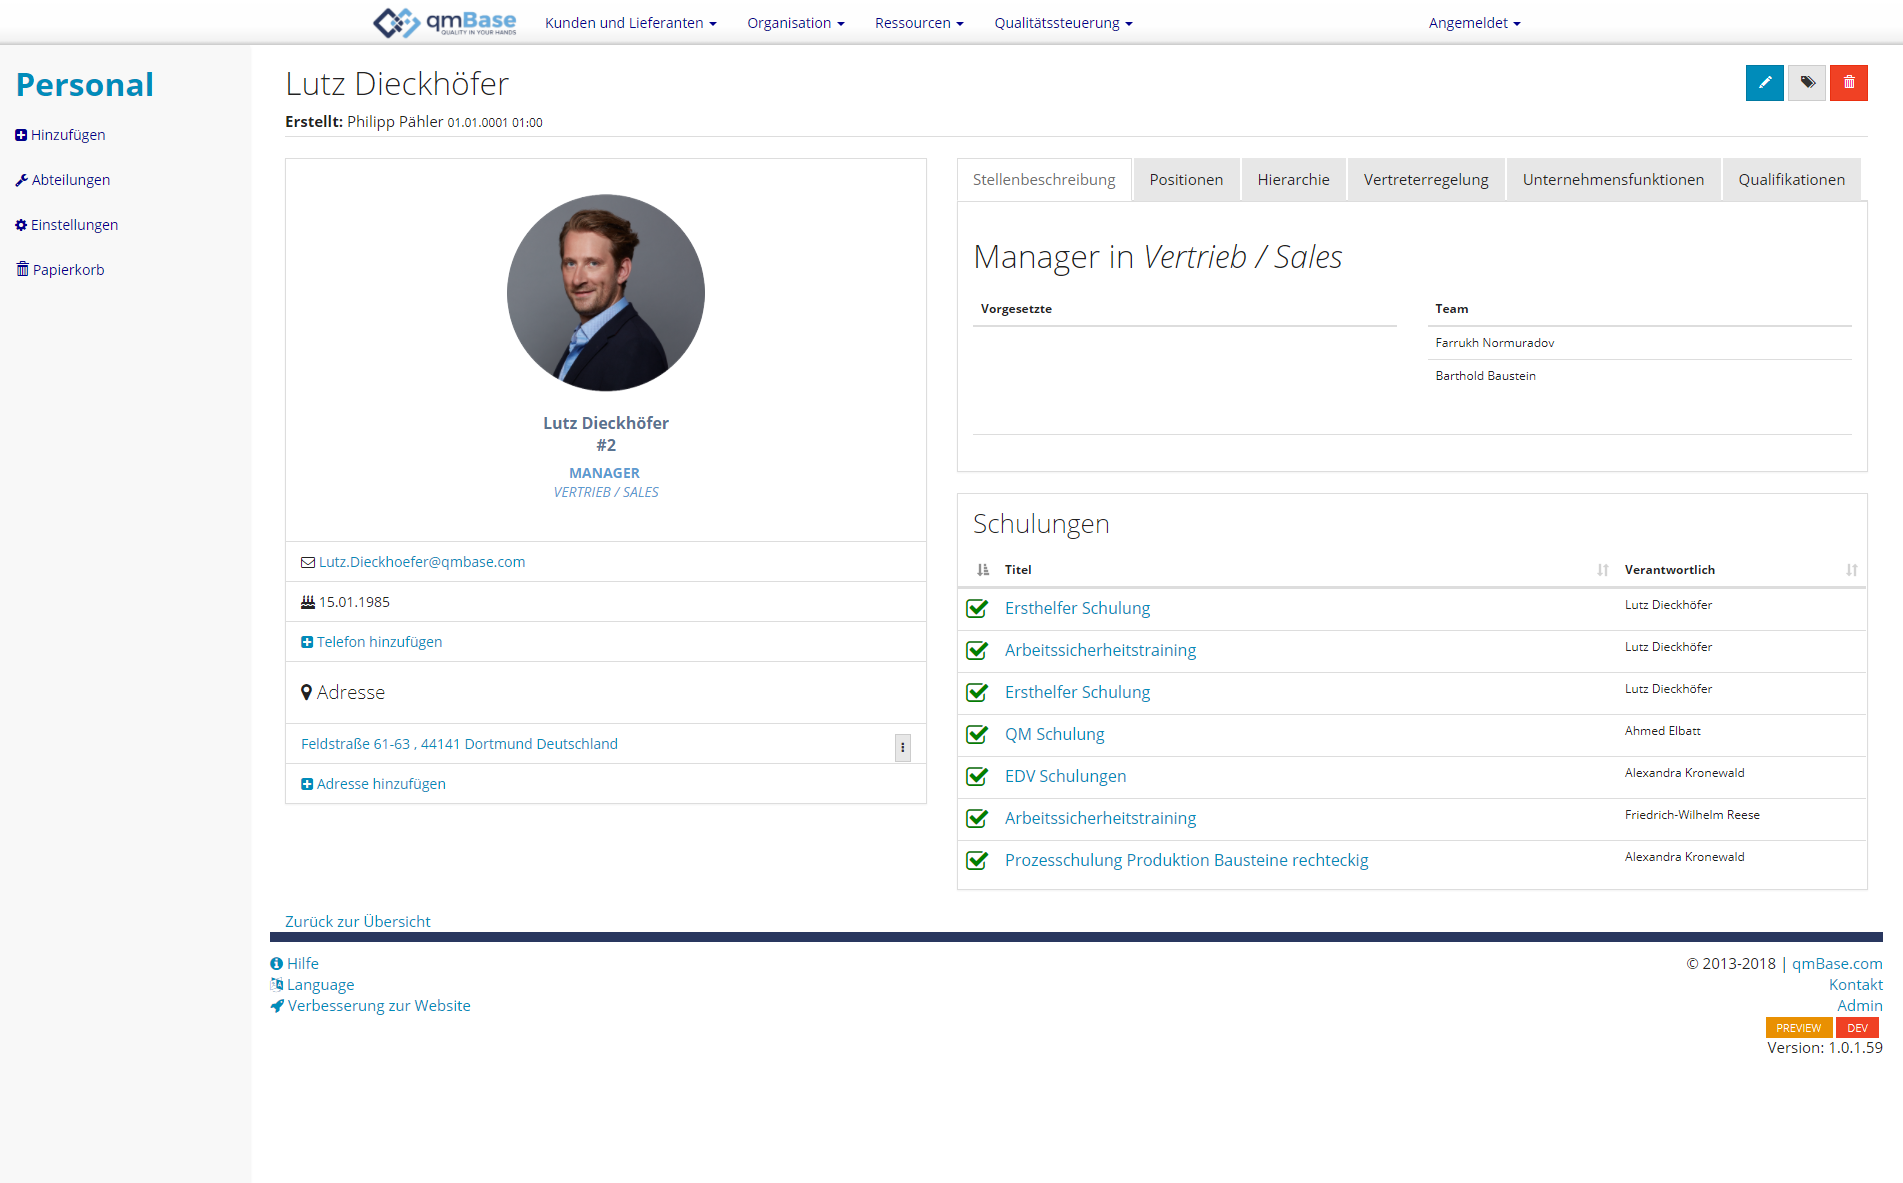 Training Management Software Individual Page